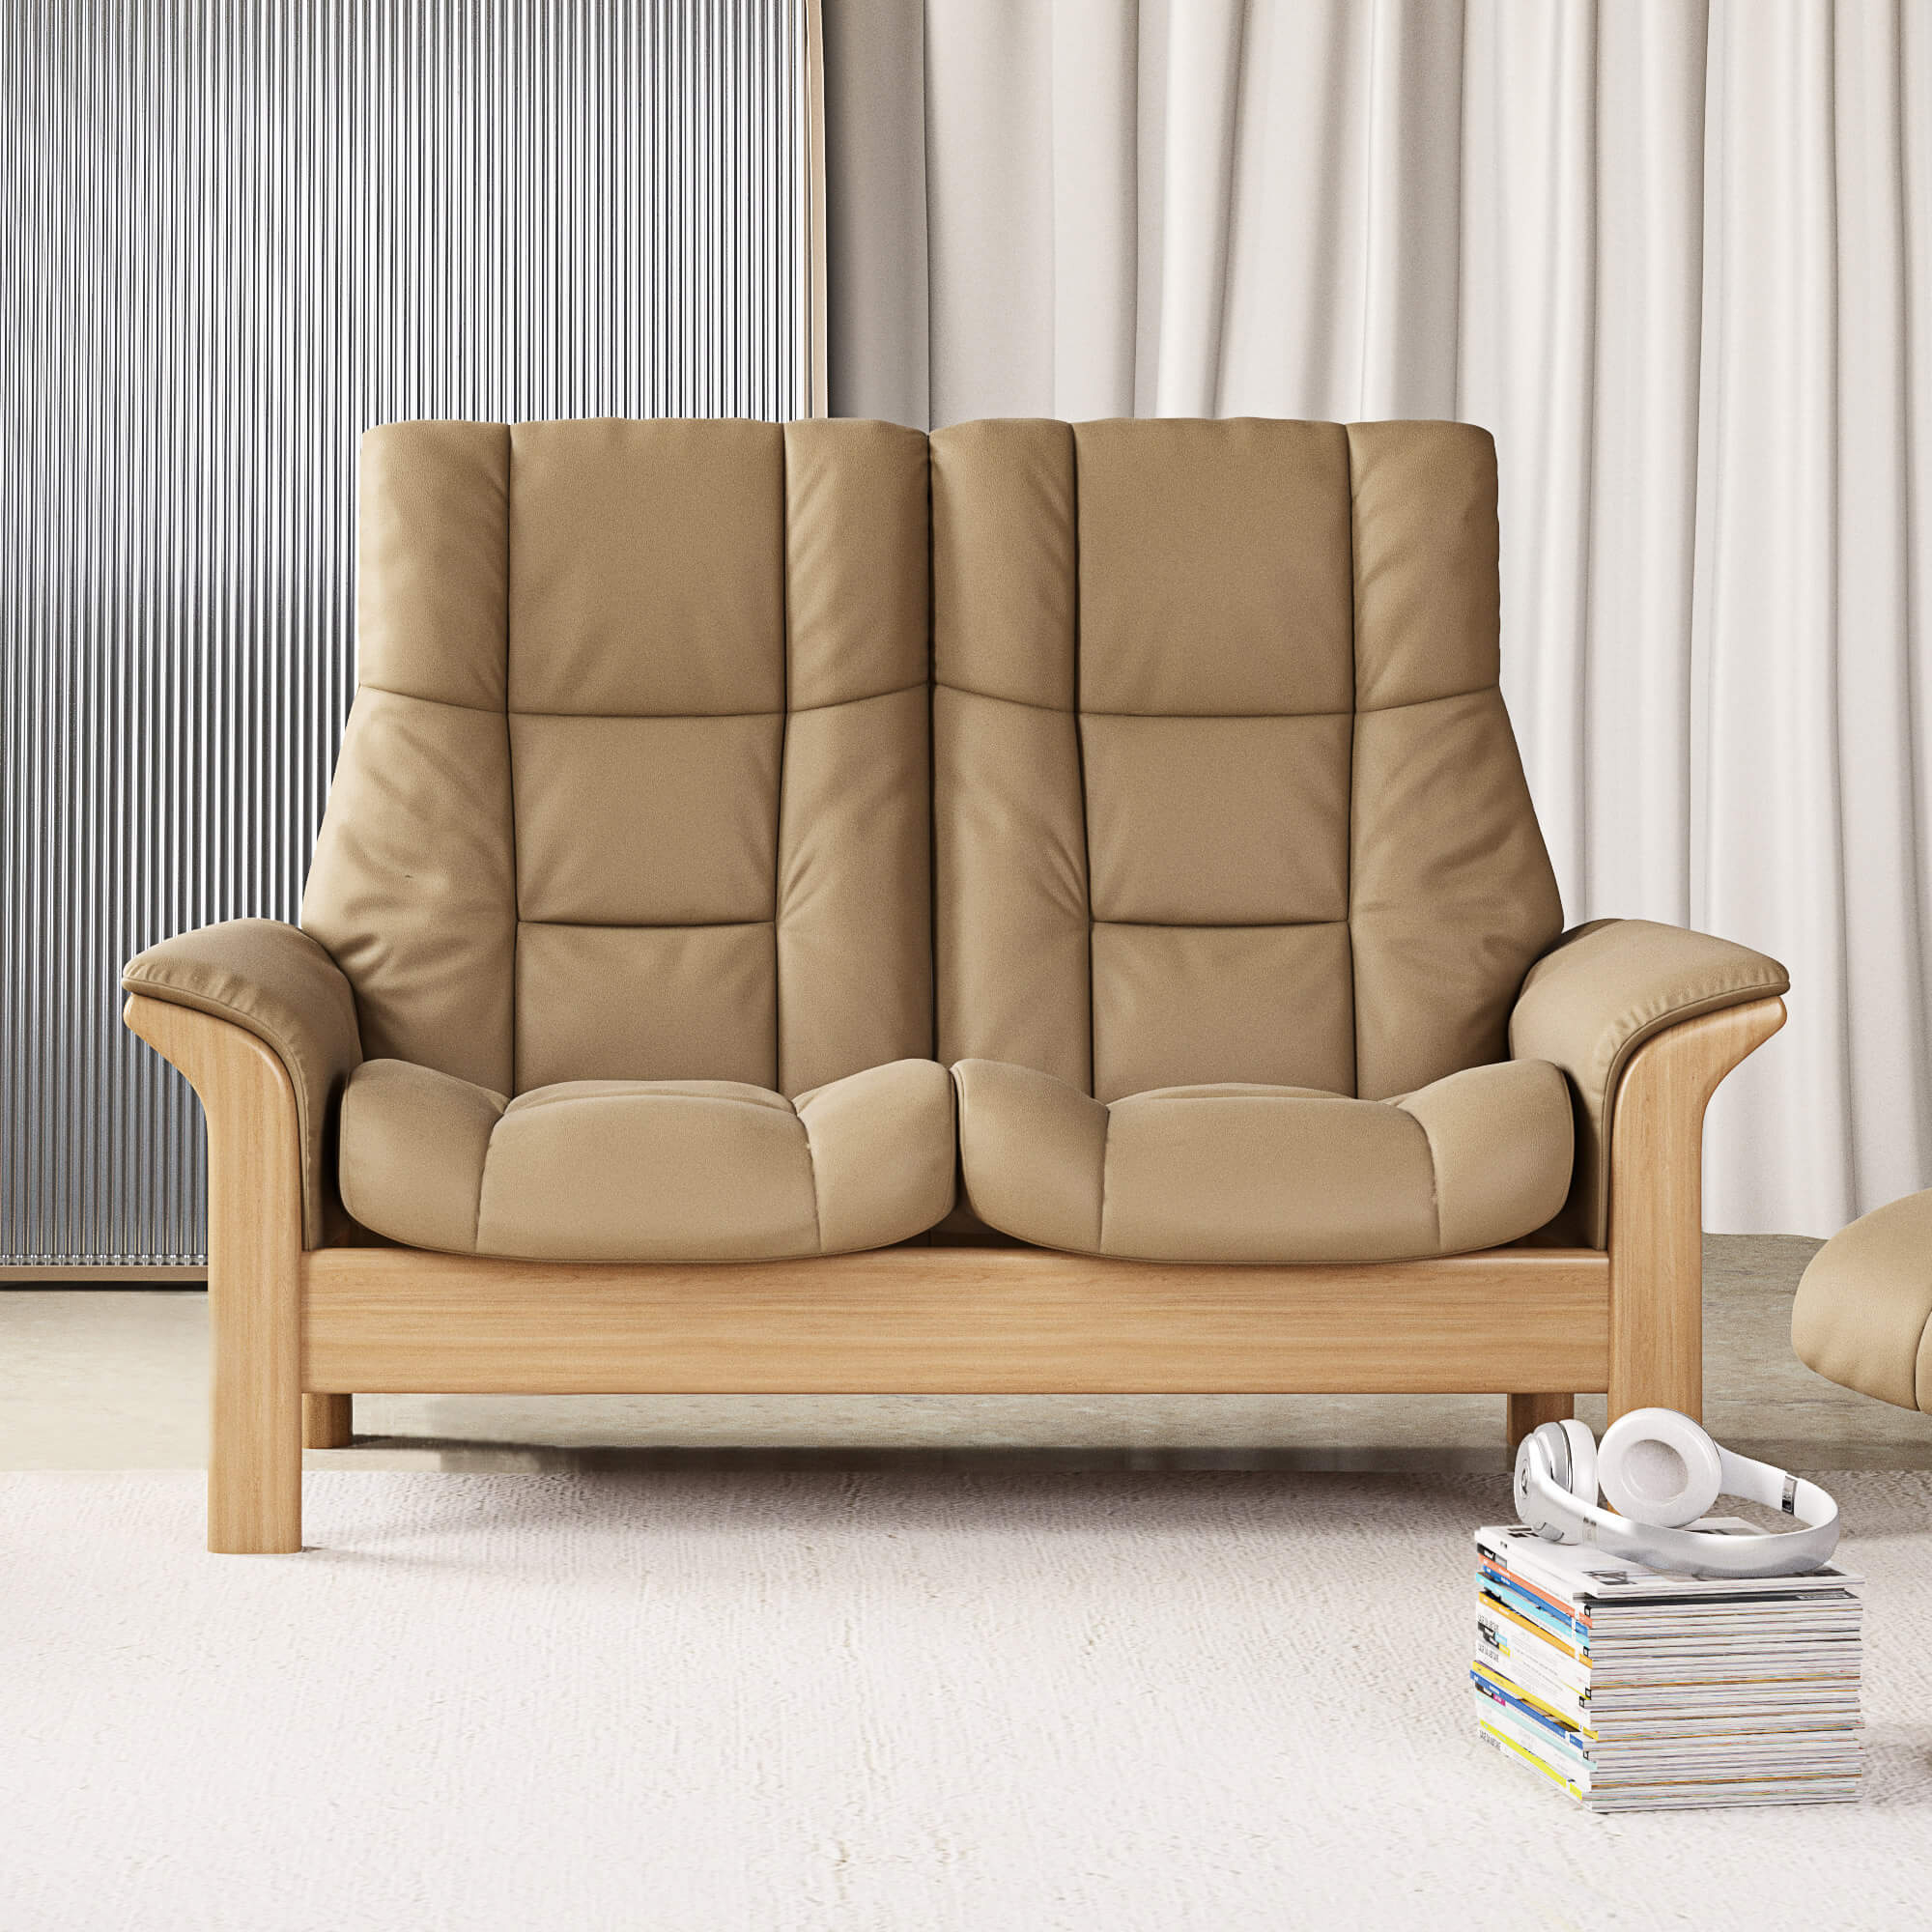 Stressless Windsor 2 Seater High Back Recliner Sofa In With High Back Sofas And Chairs (View 15 of 15)